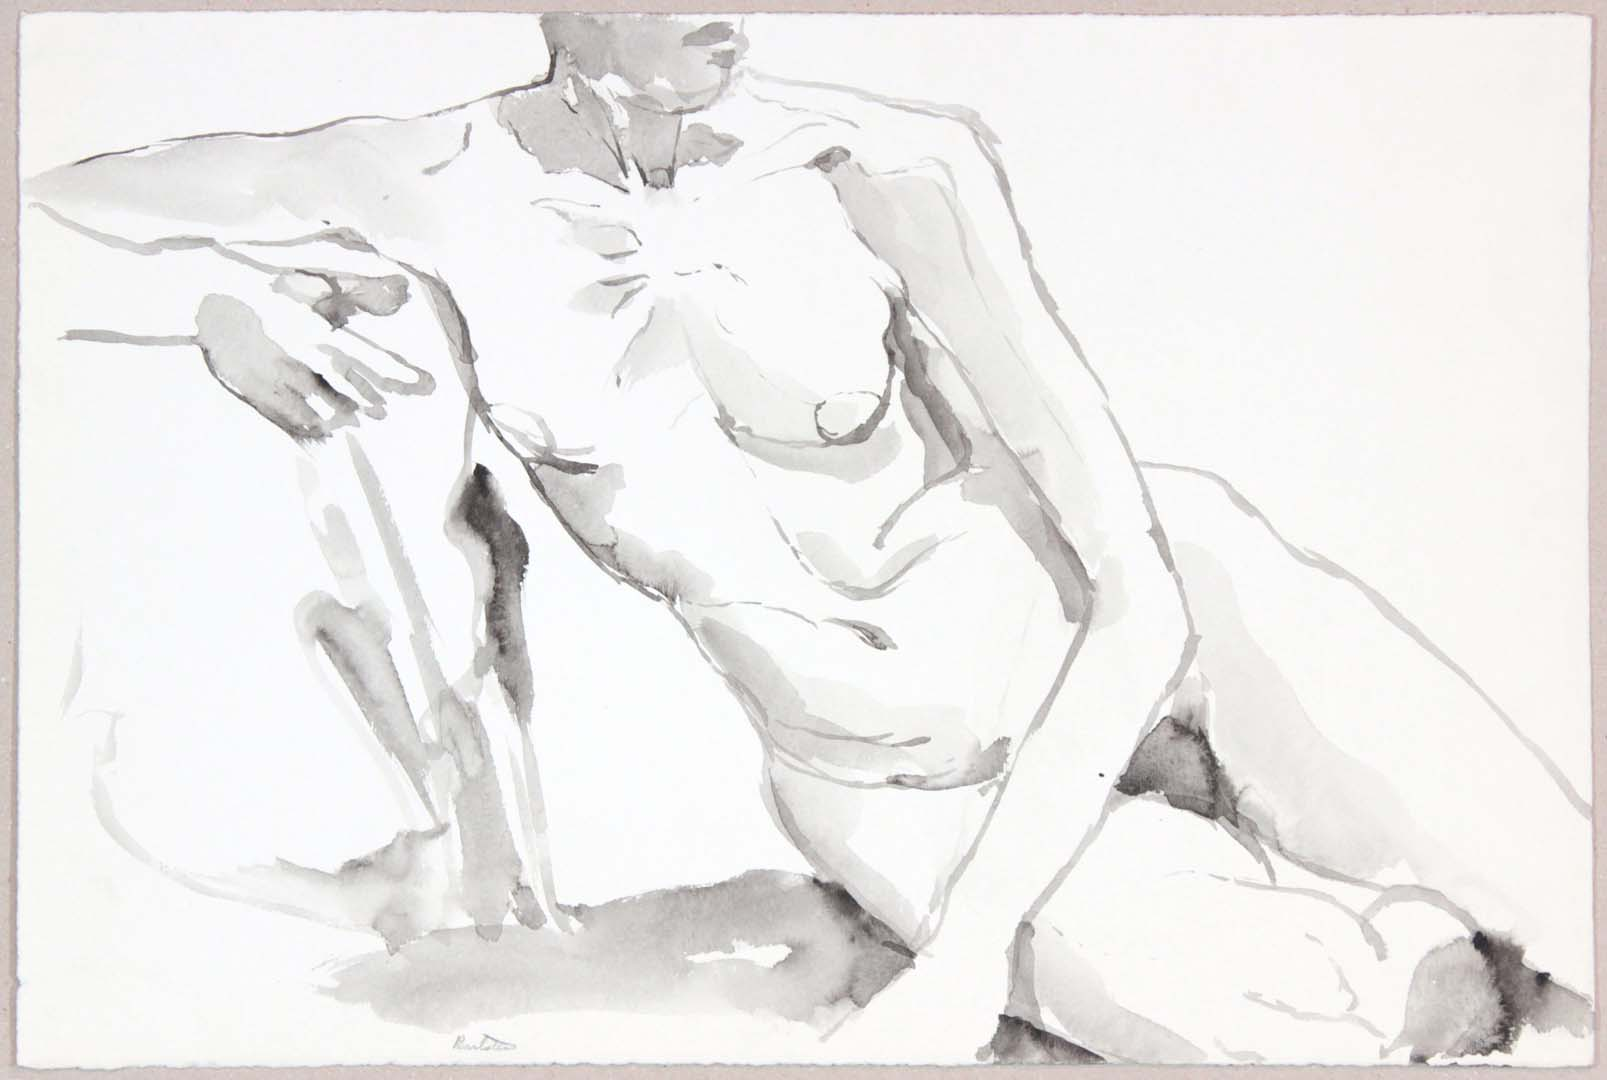 Leaning Female Nude Wash 13.75 x 20.625